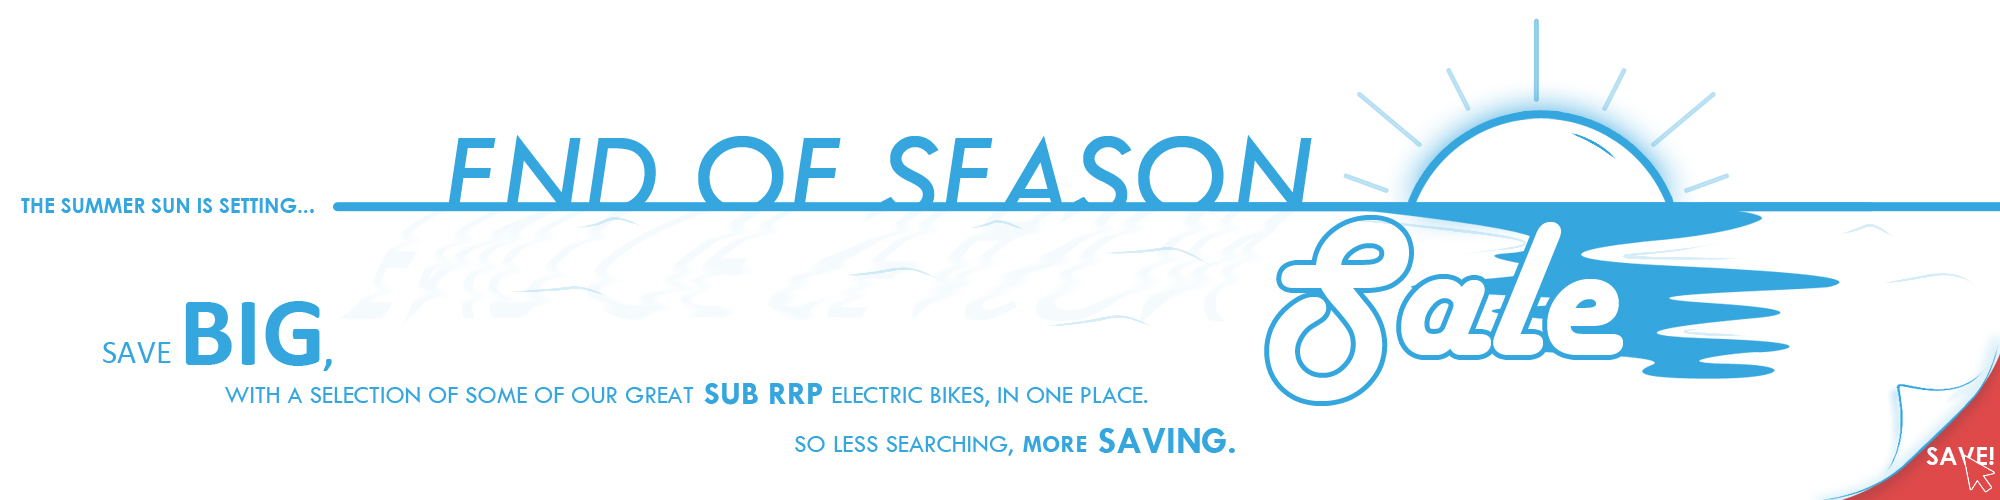 End Of Season Autumn Electric Bike Sale at E-Bikes Direct